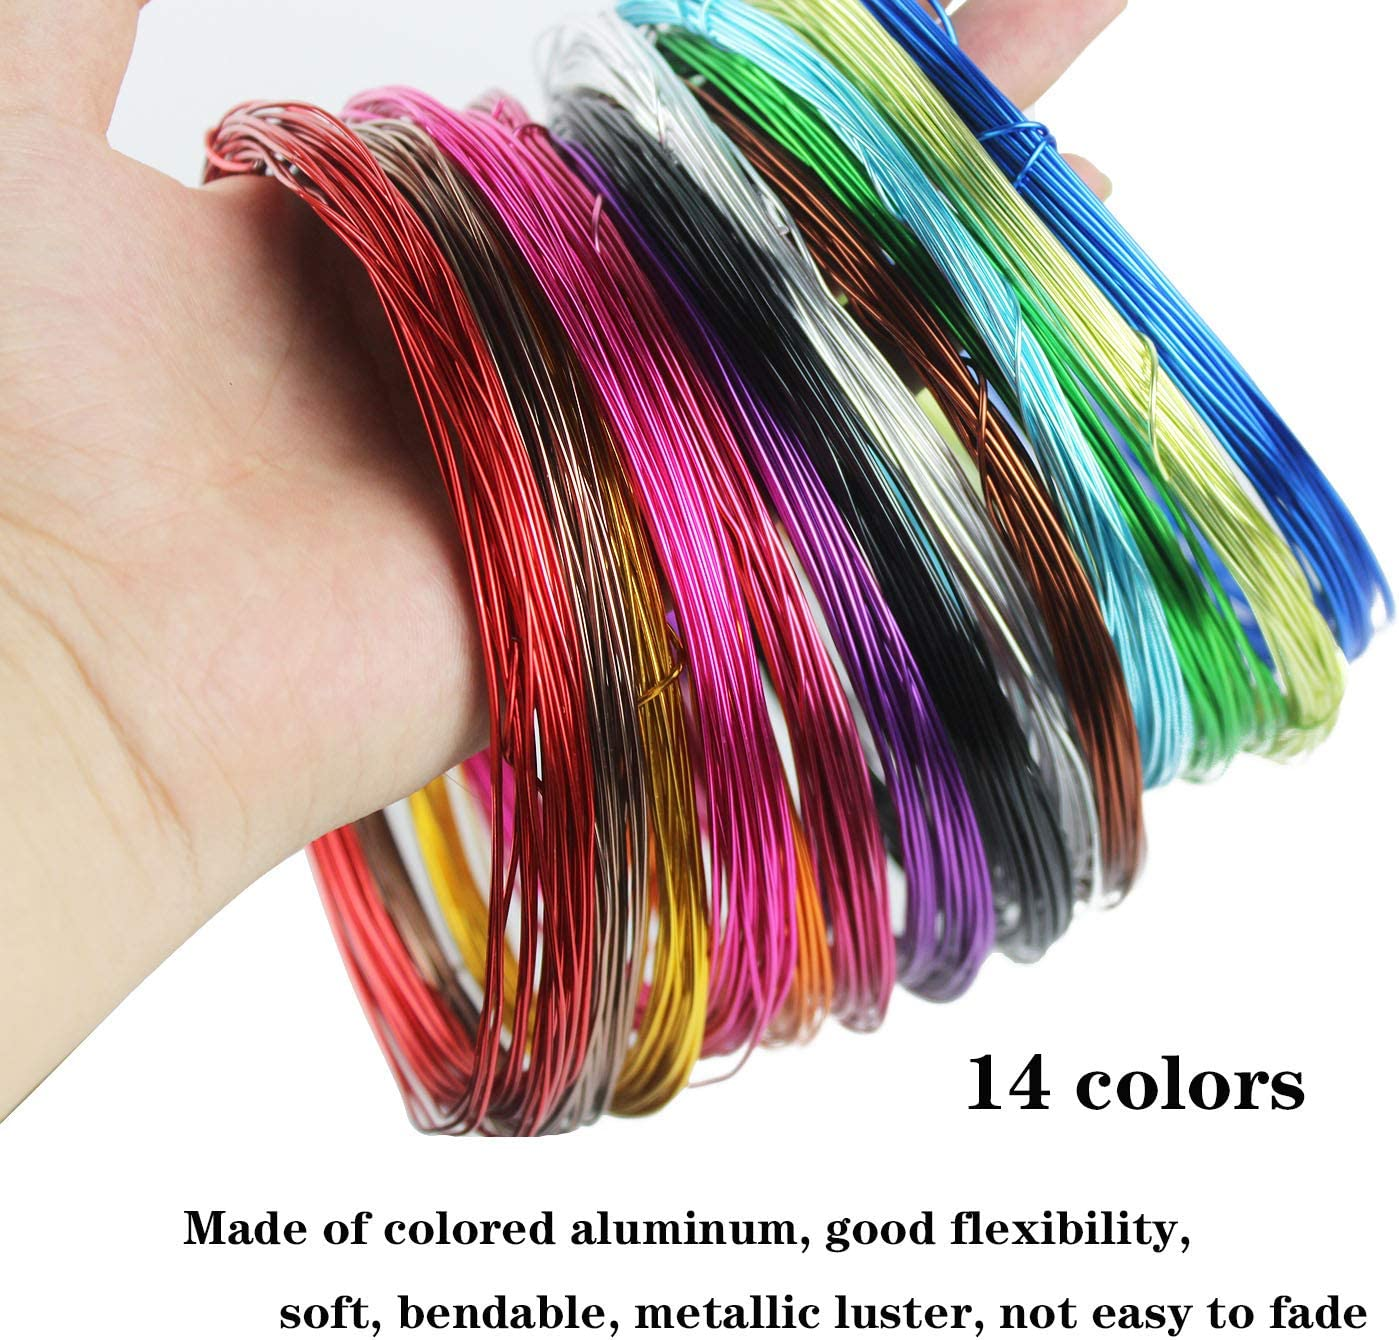 Each Roll 32.8 Feet 14 Colors 14 Rolls 459 Feet Colored Aluminum Craft Wire 1mm Flexible Metal Artistic Floral Jewelry Beading Wire